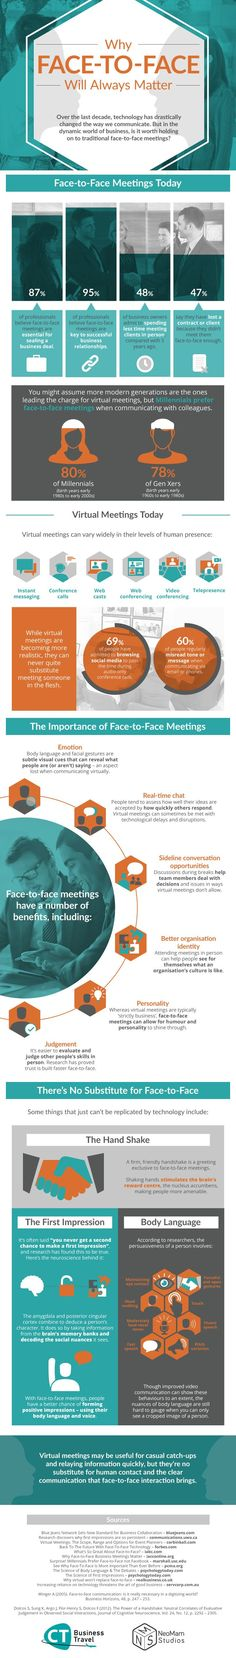 Why Real Face Time Will Always Matter (Infographic) | Inc.com